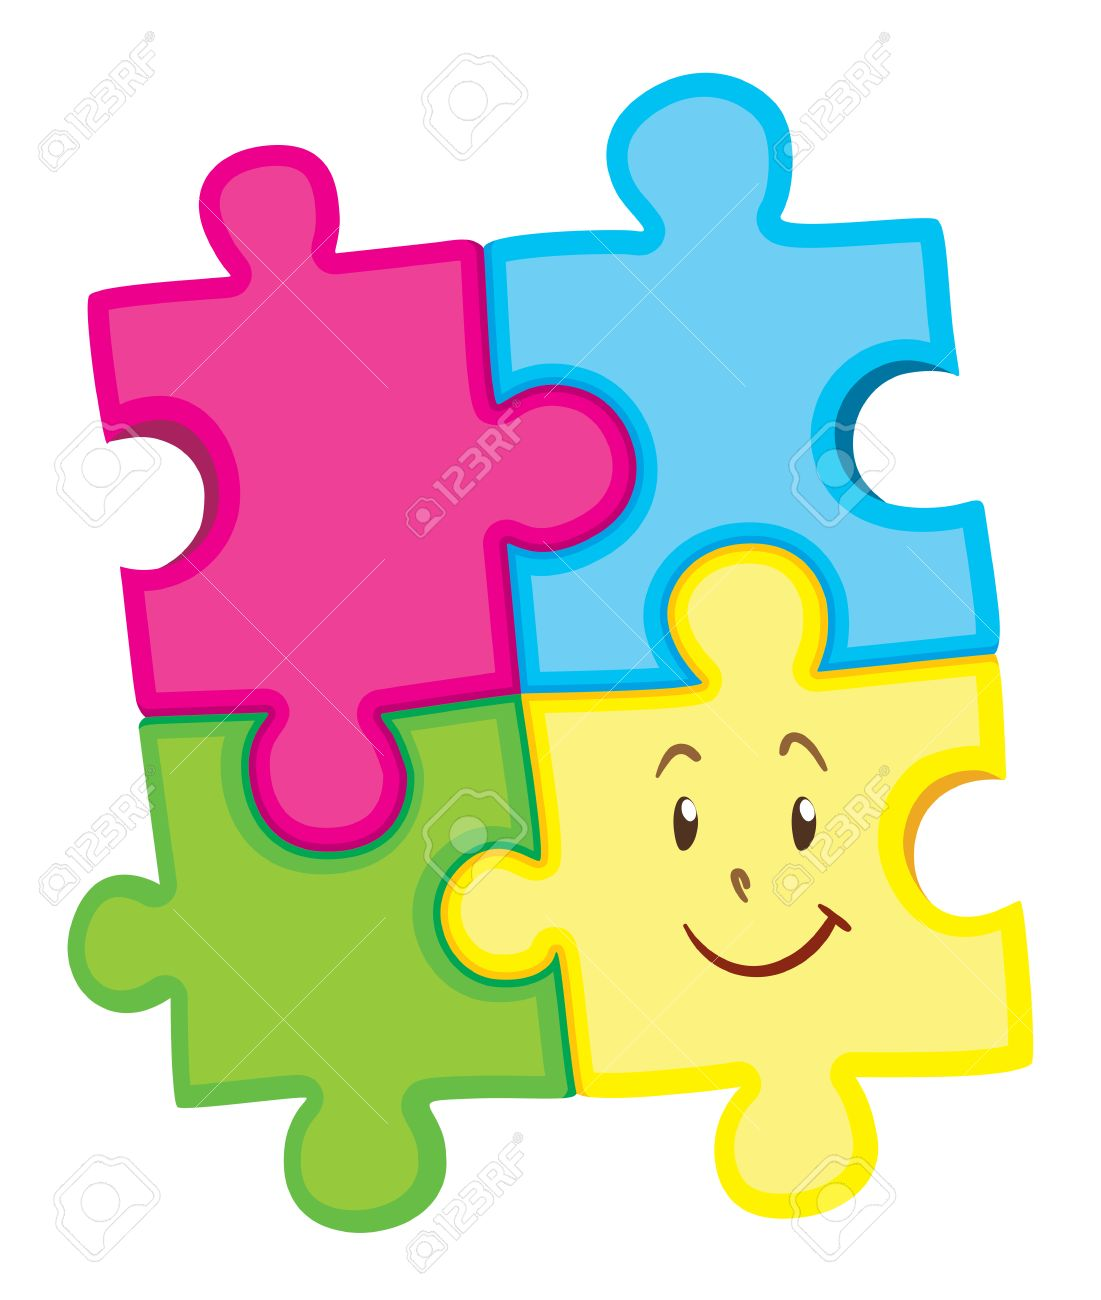 jigsaw puzzle pieces with happy face illustration royalty free rh 123rf com jigsaw puzzle border clipart jigsaw puzzle clip art free